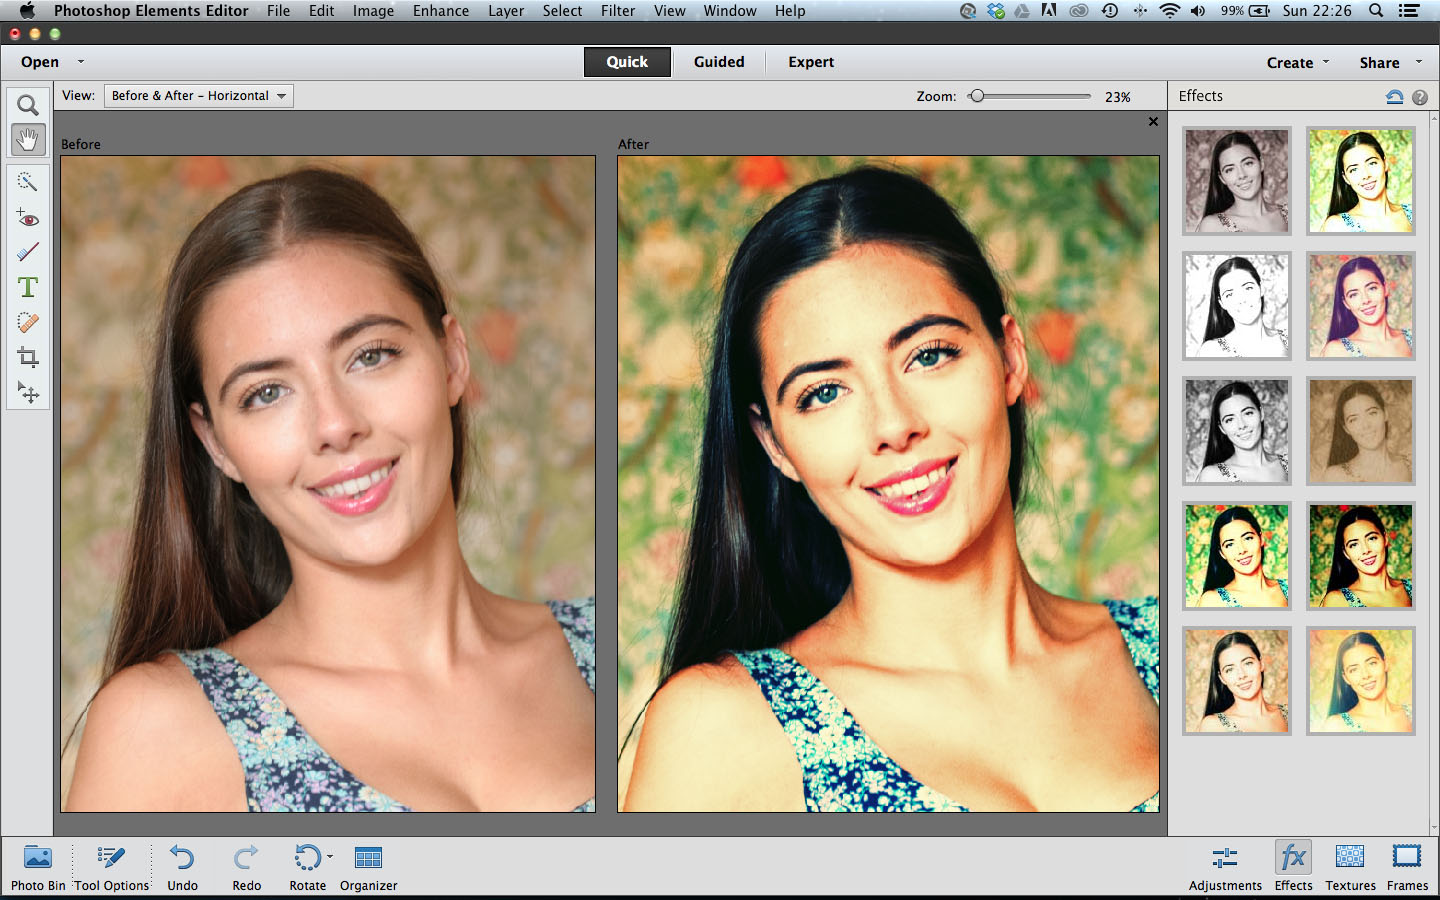 Adobe Photoshop Elements 2019 Crack + License Key Free Download